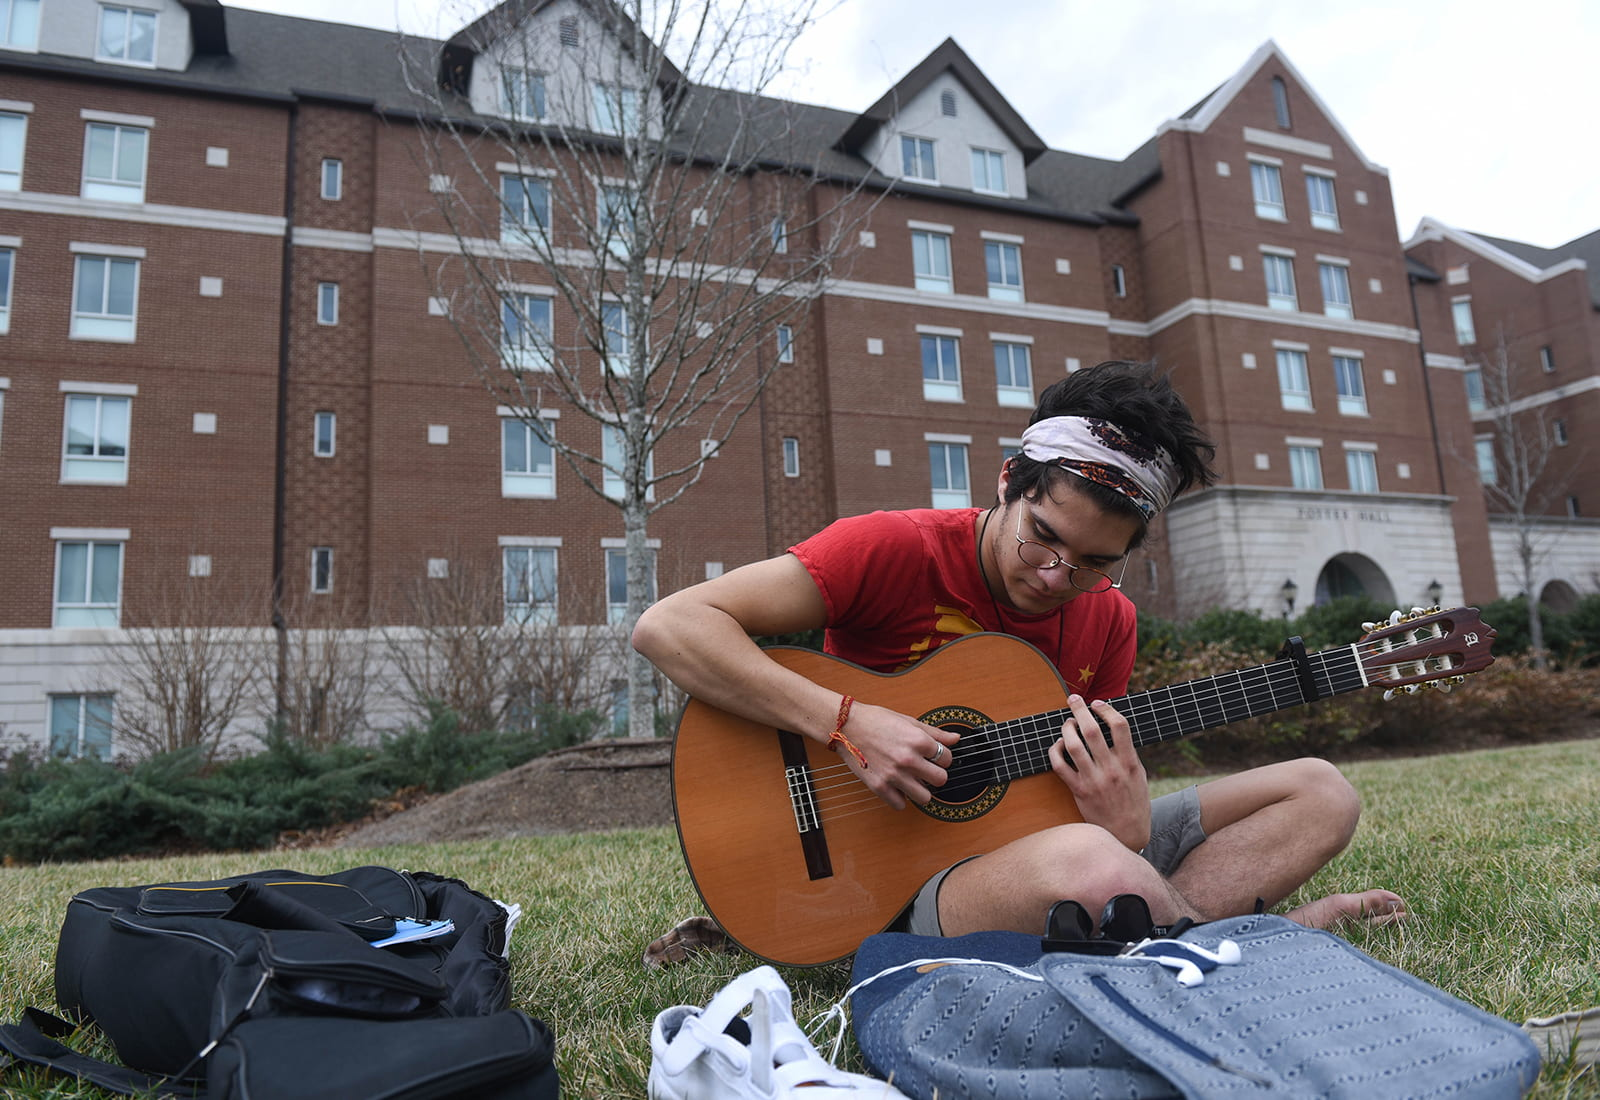 A student playing guitar on the lawn of Belmont University